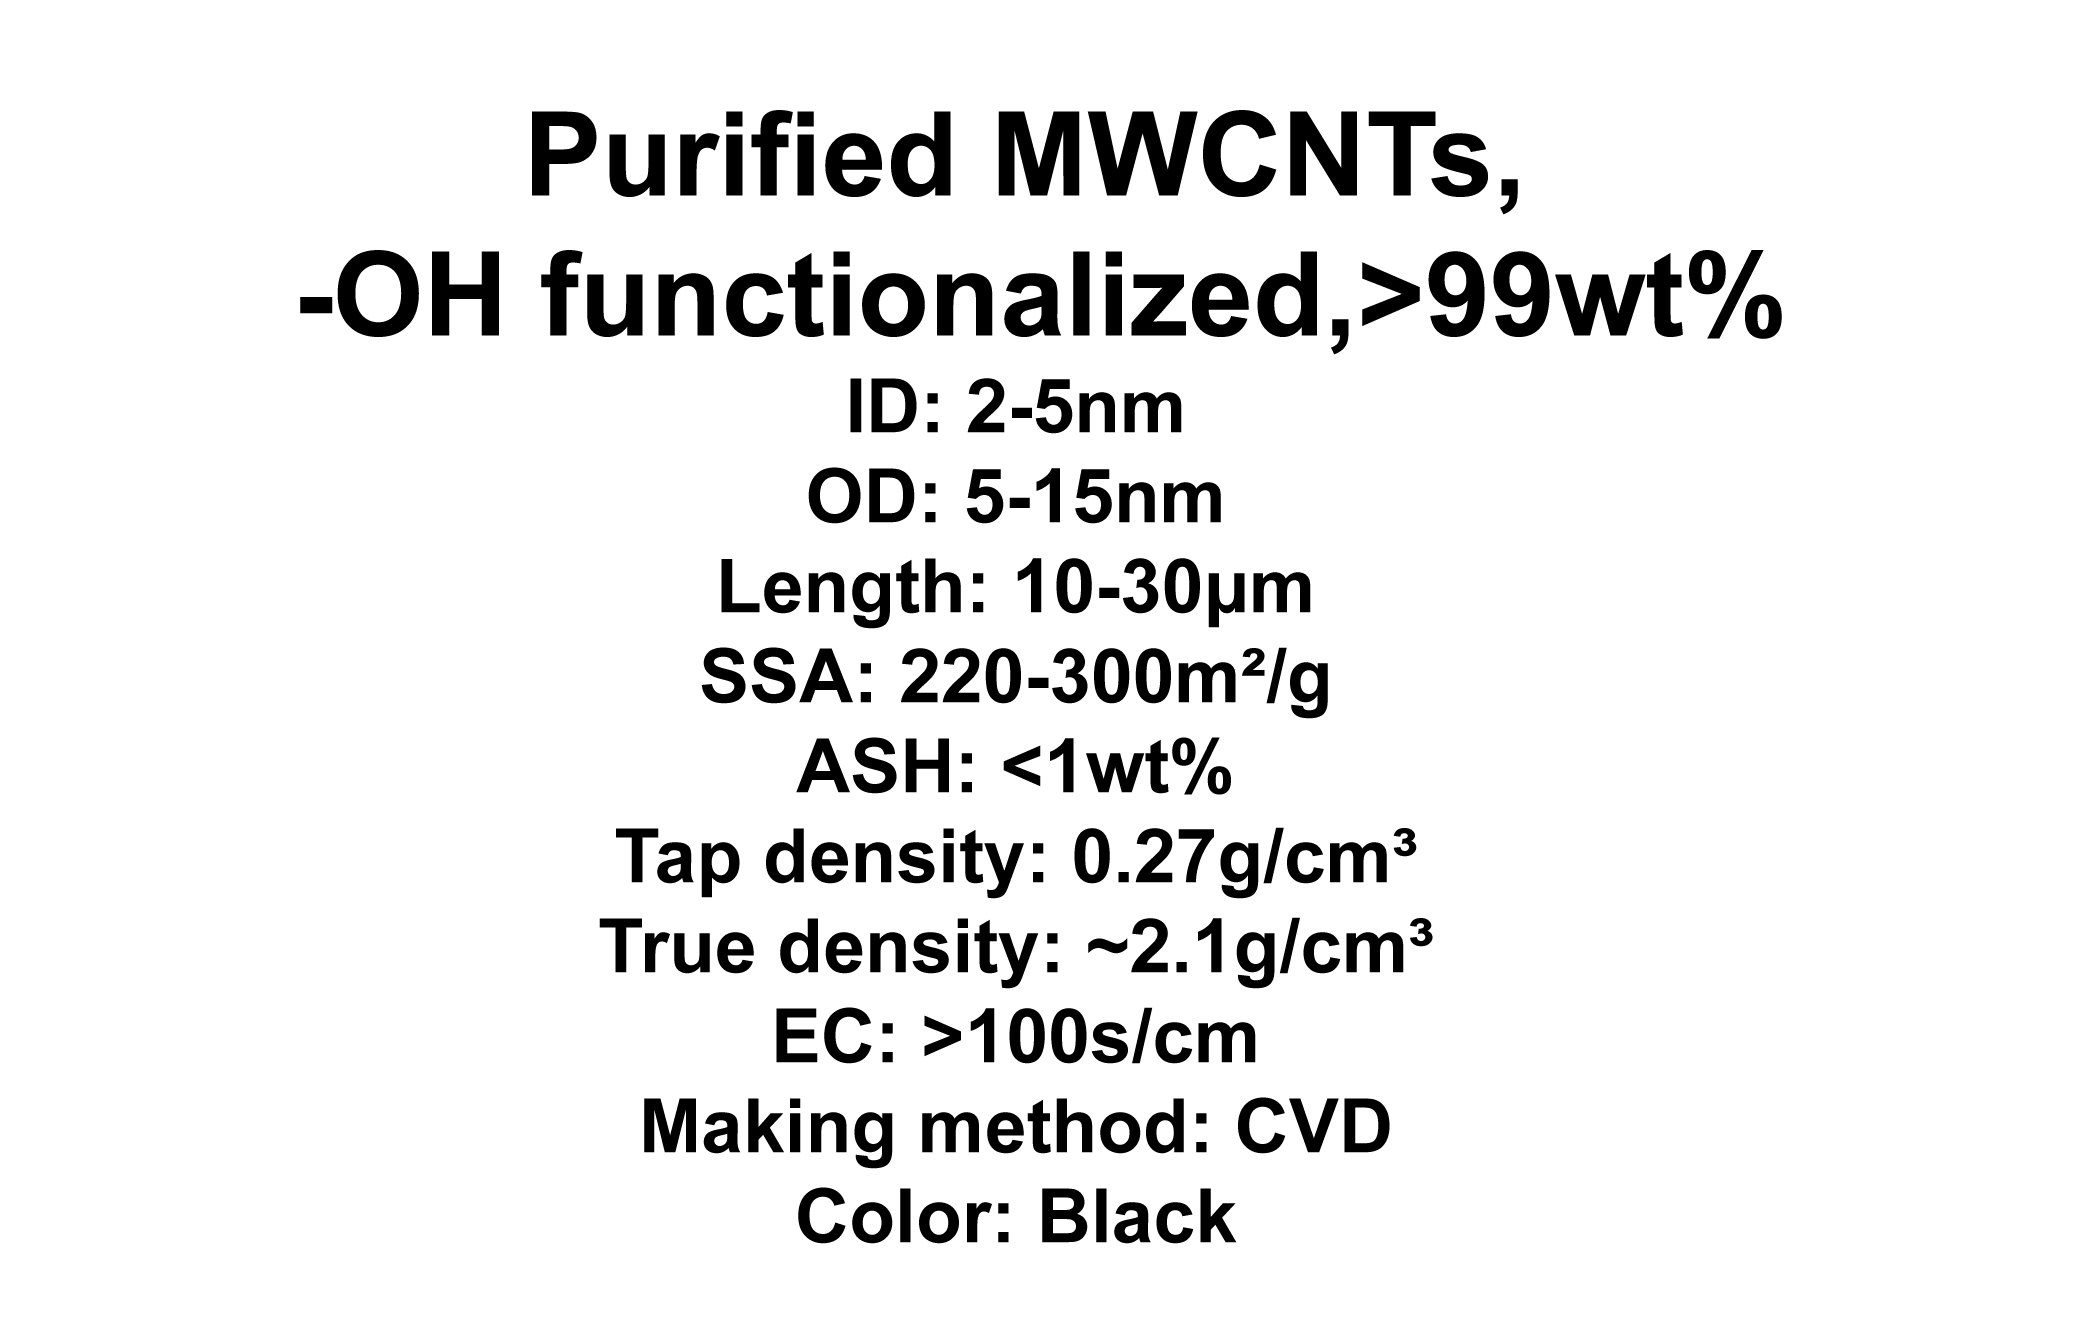 Purified MWCNTs, -OH functionalized (TNMPH1)